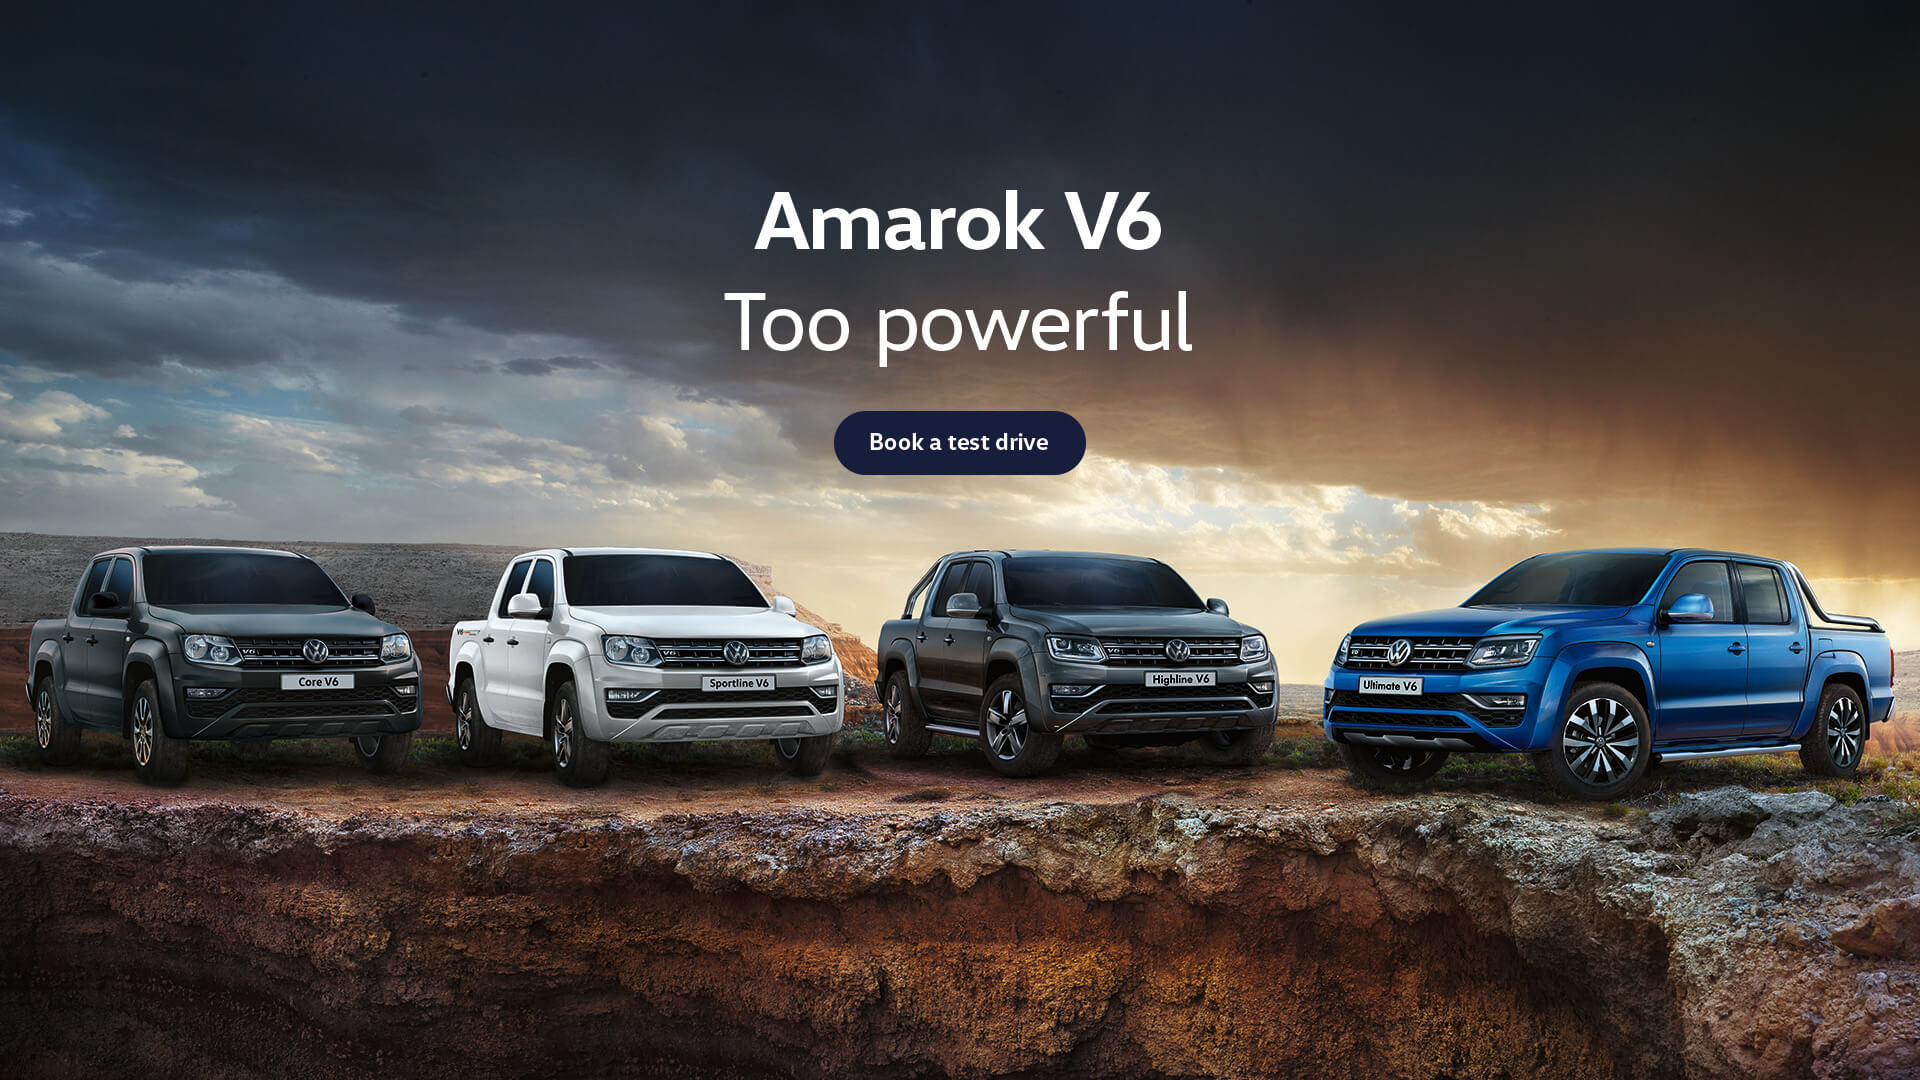 Amarok V6. Too powerful. Test drive today at Geoff King Volkswagen, Coffs Harbour.